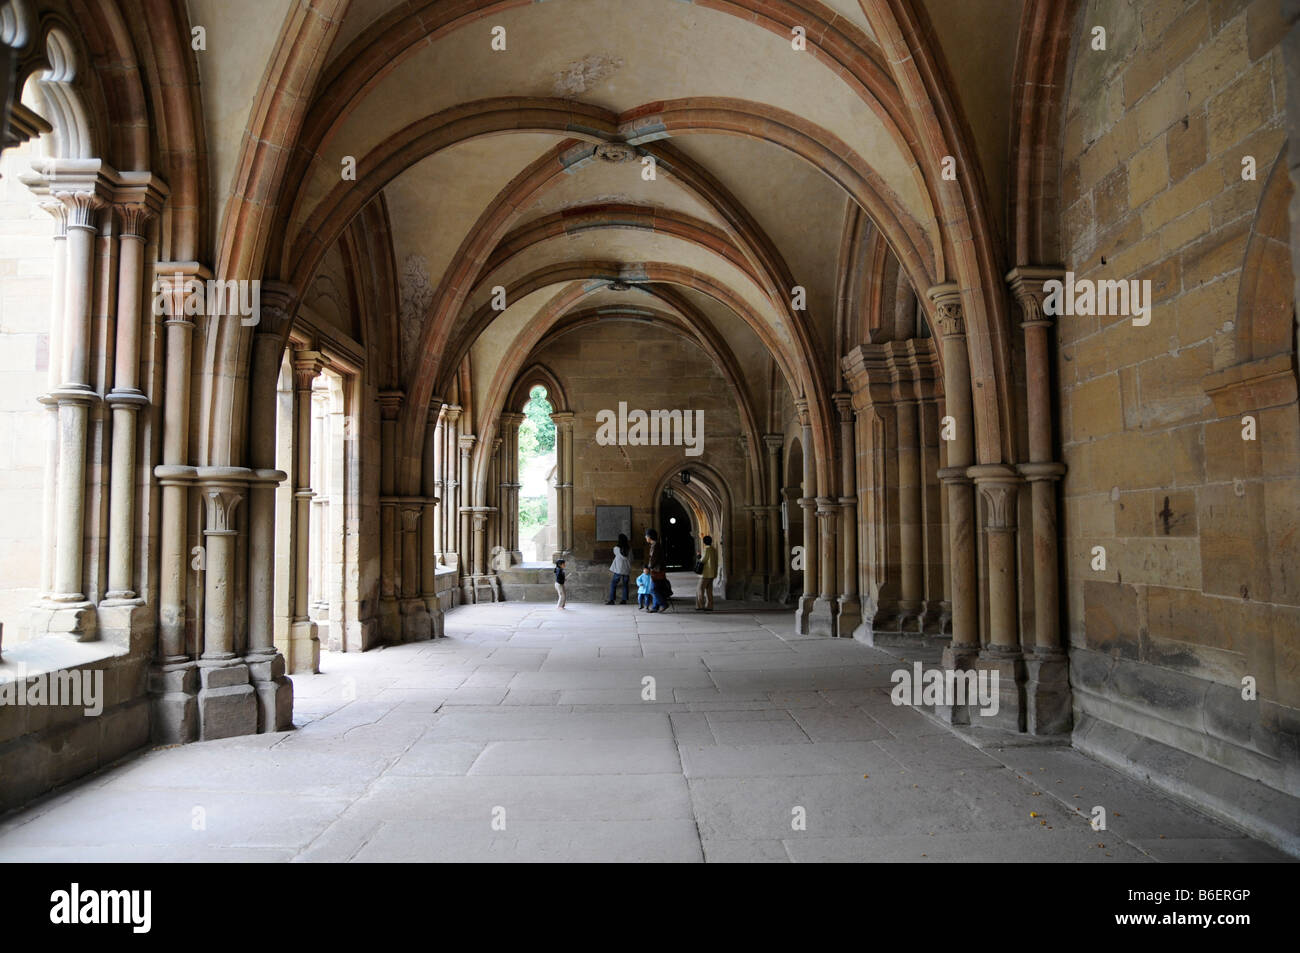 Cloister in the Kloster Maulbronn Convent, a World Heritage Site since 1993, Baden-Wuerttemberg, Germany, Europe Stock Photo